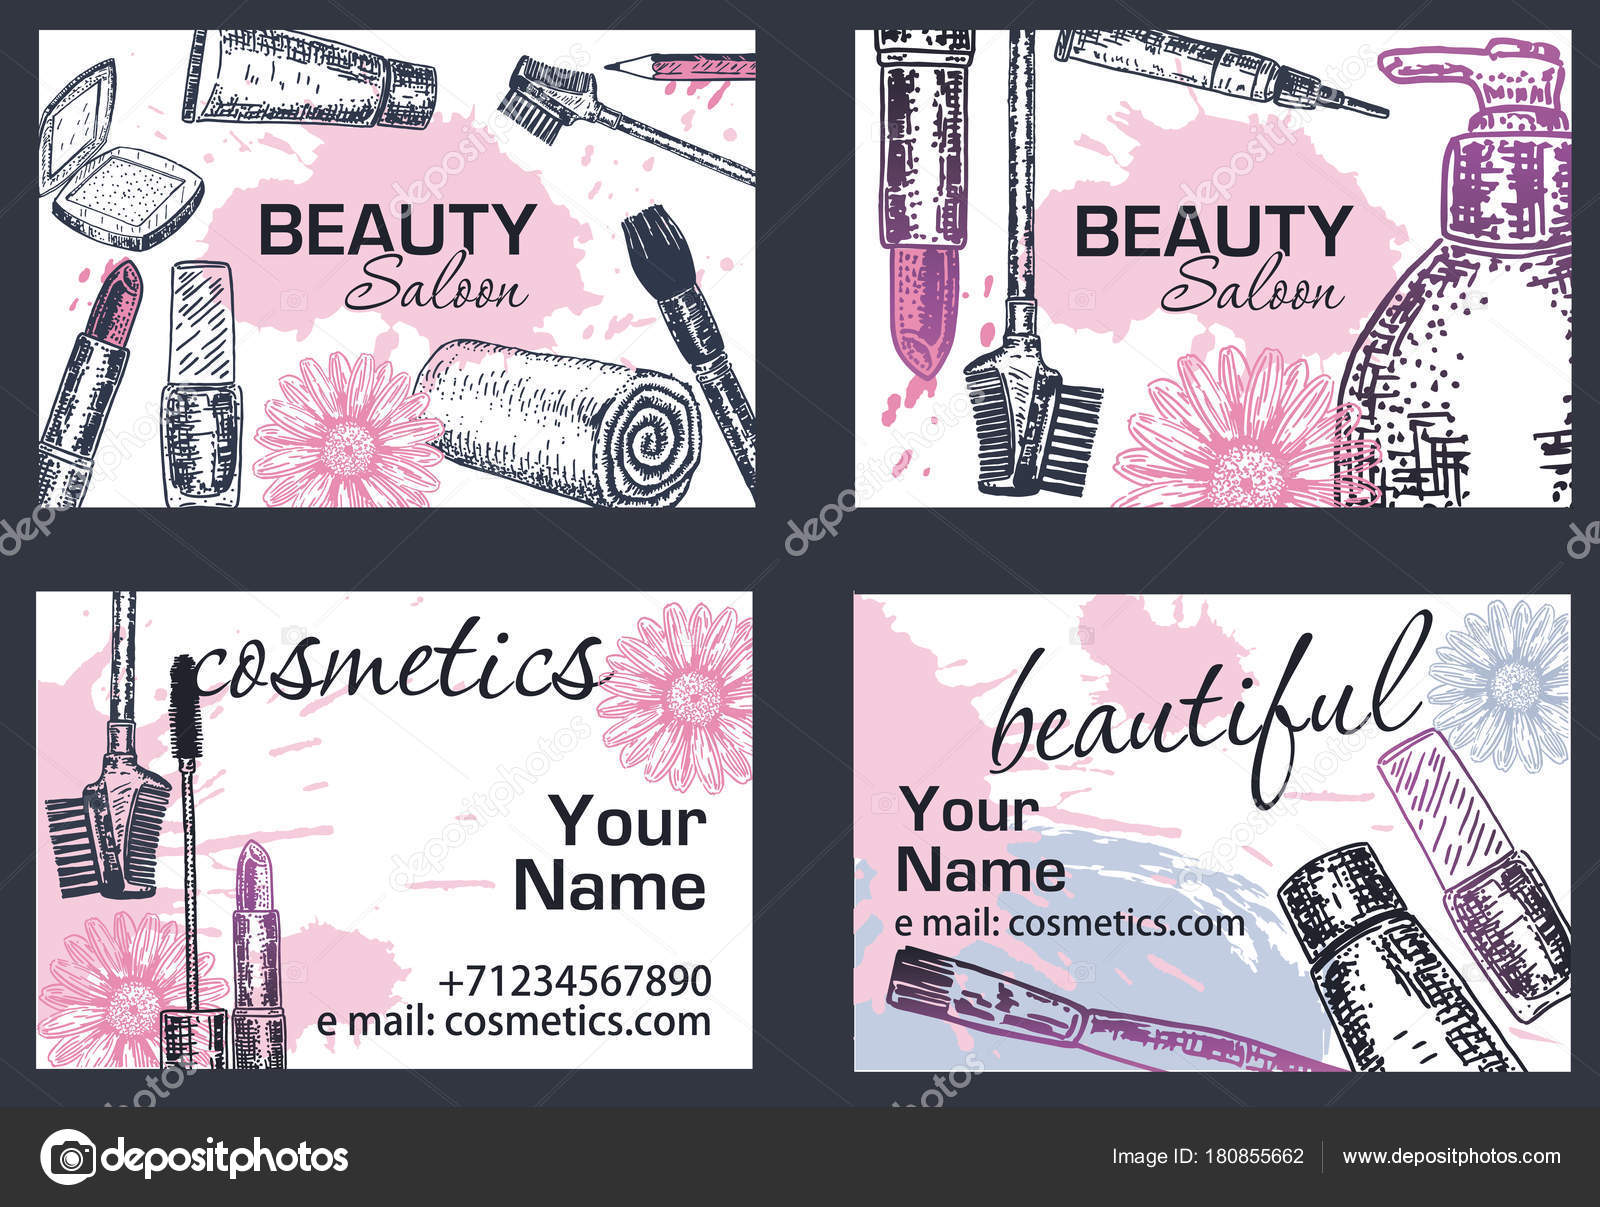 Beauty salon business card vector hand drawn illustration stock beauty salon business card vector hand drawn illustration stock vector reheart Choice Image